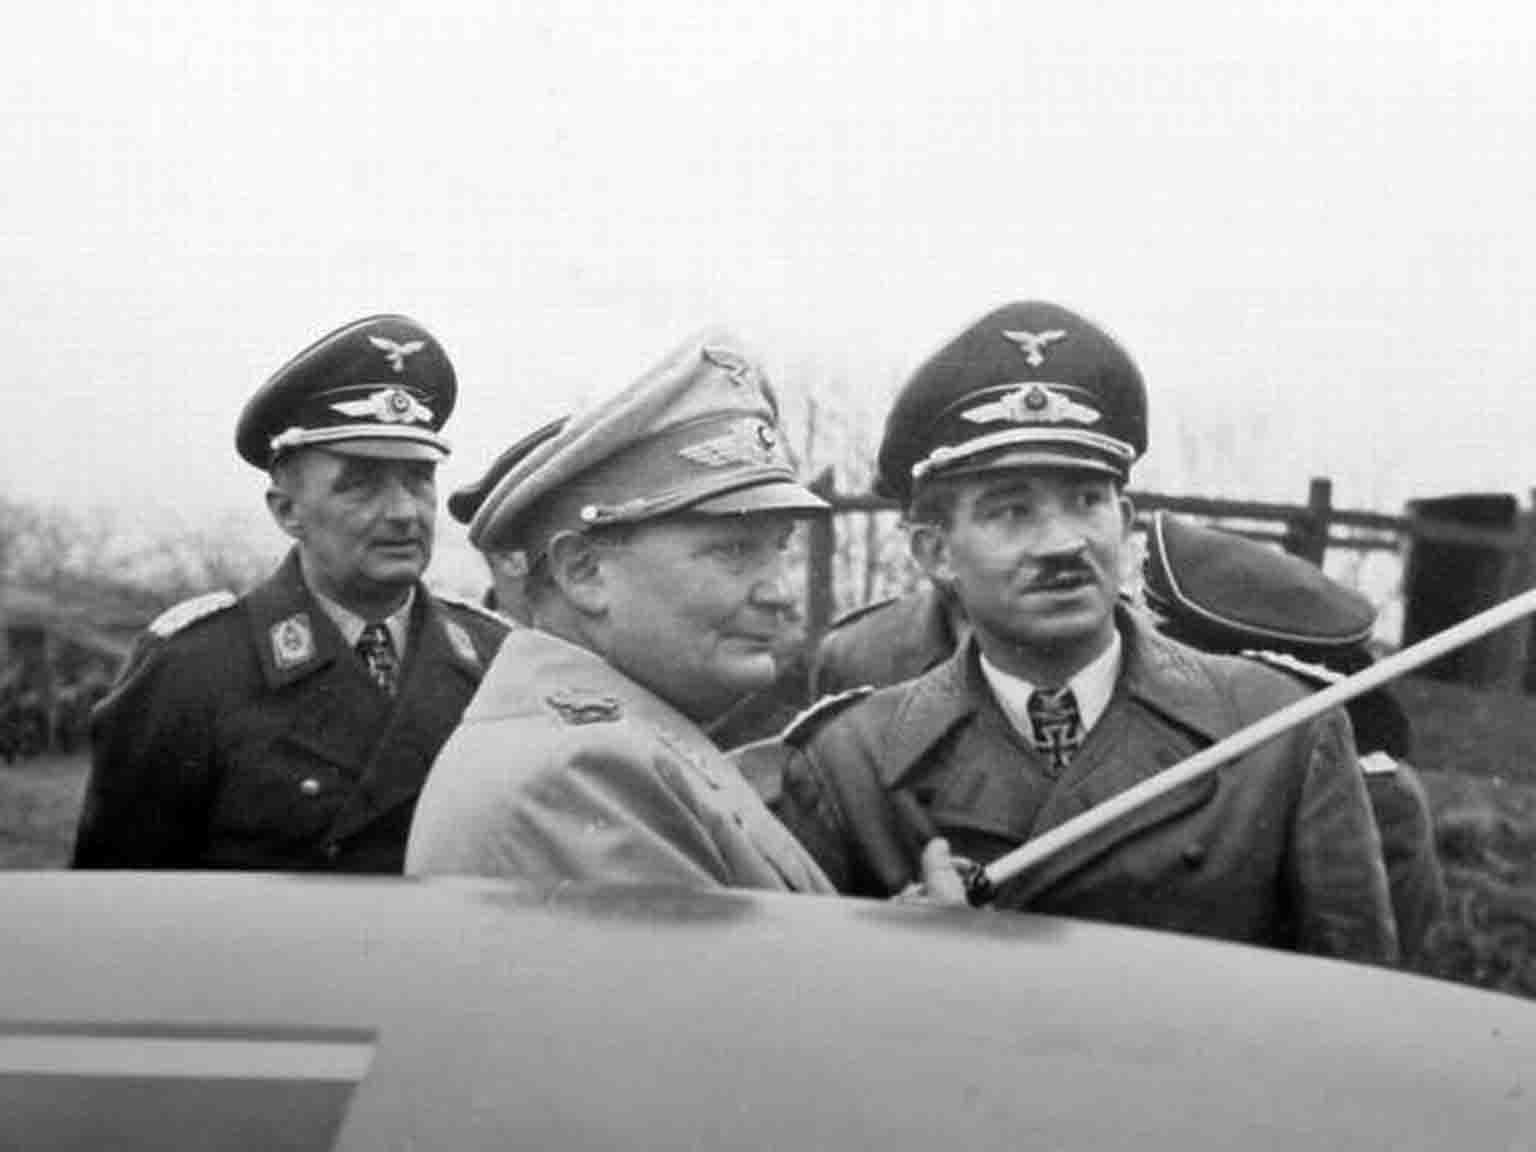 Hermann Goering, Adolf Galland